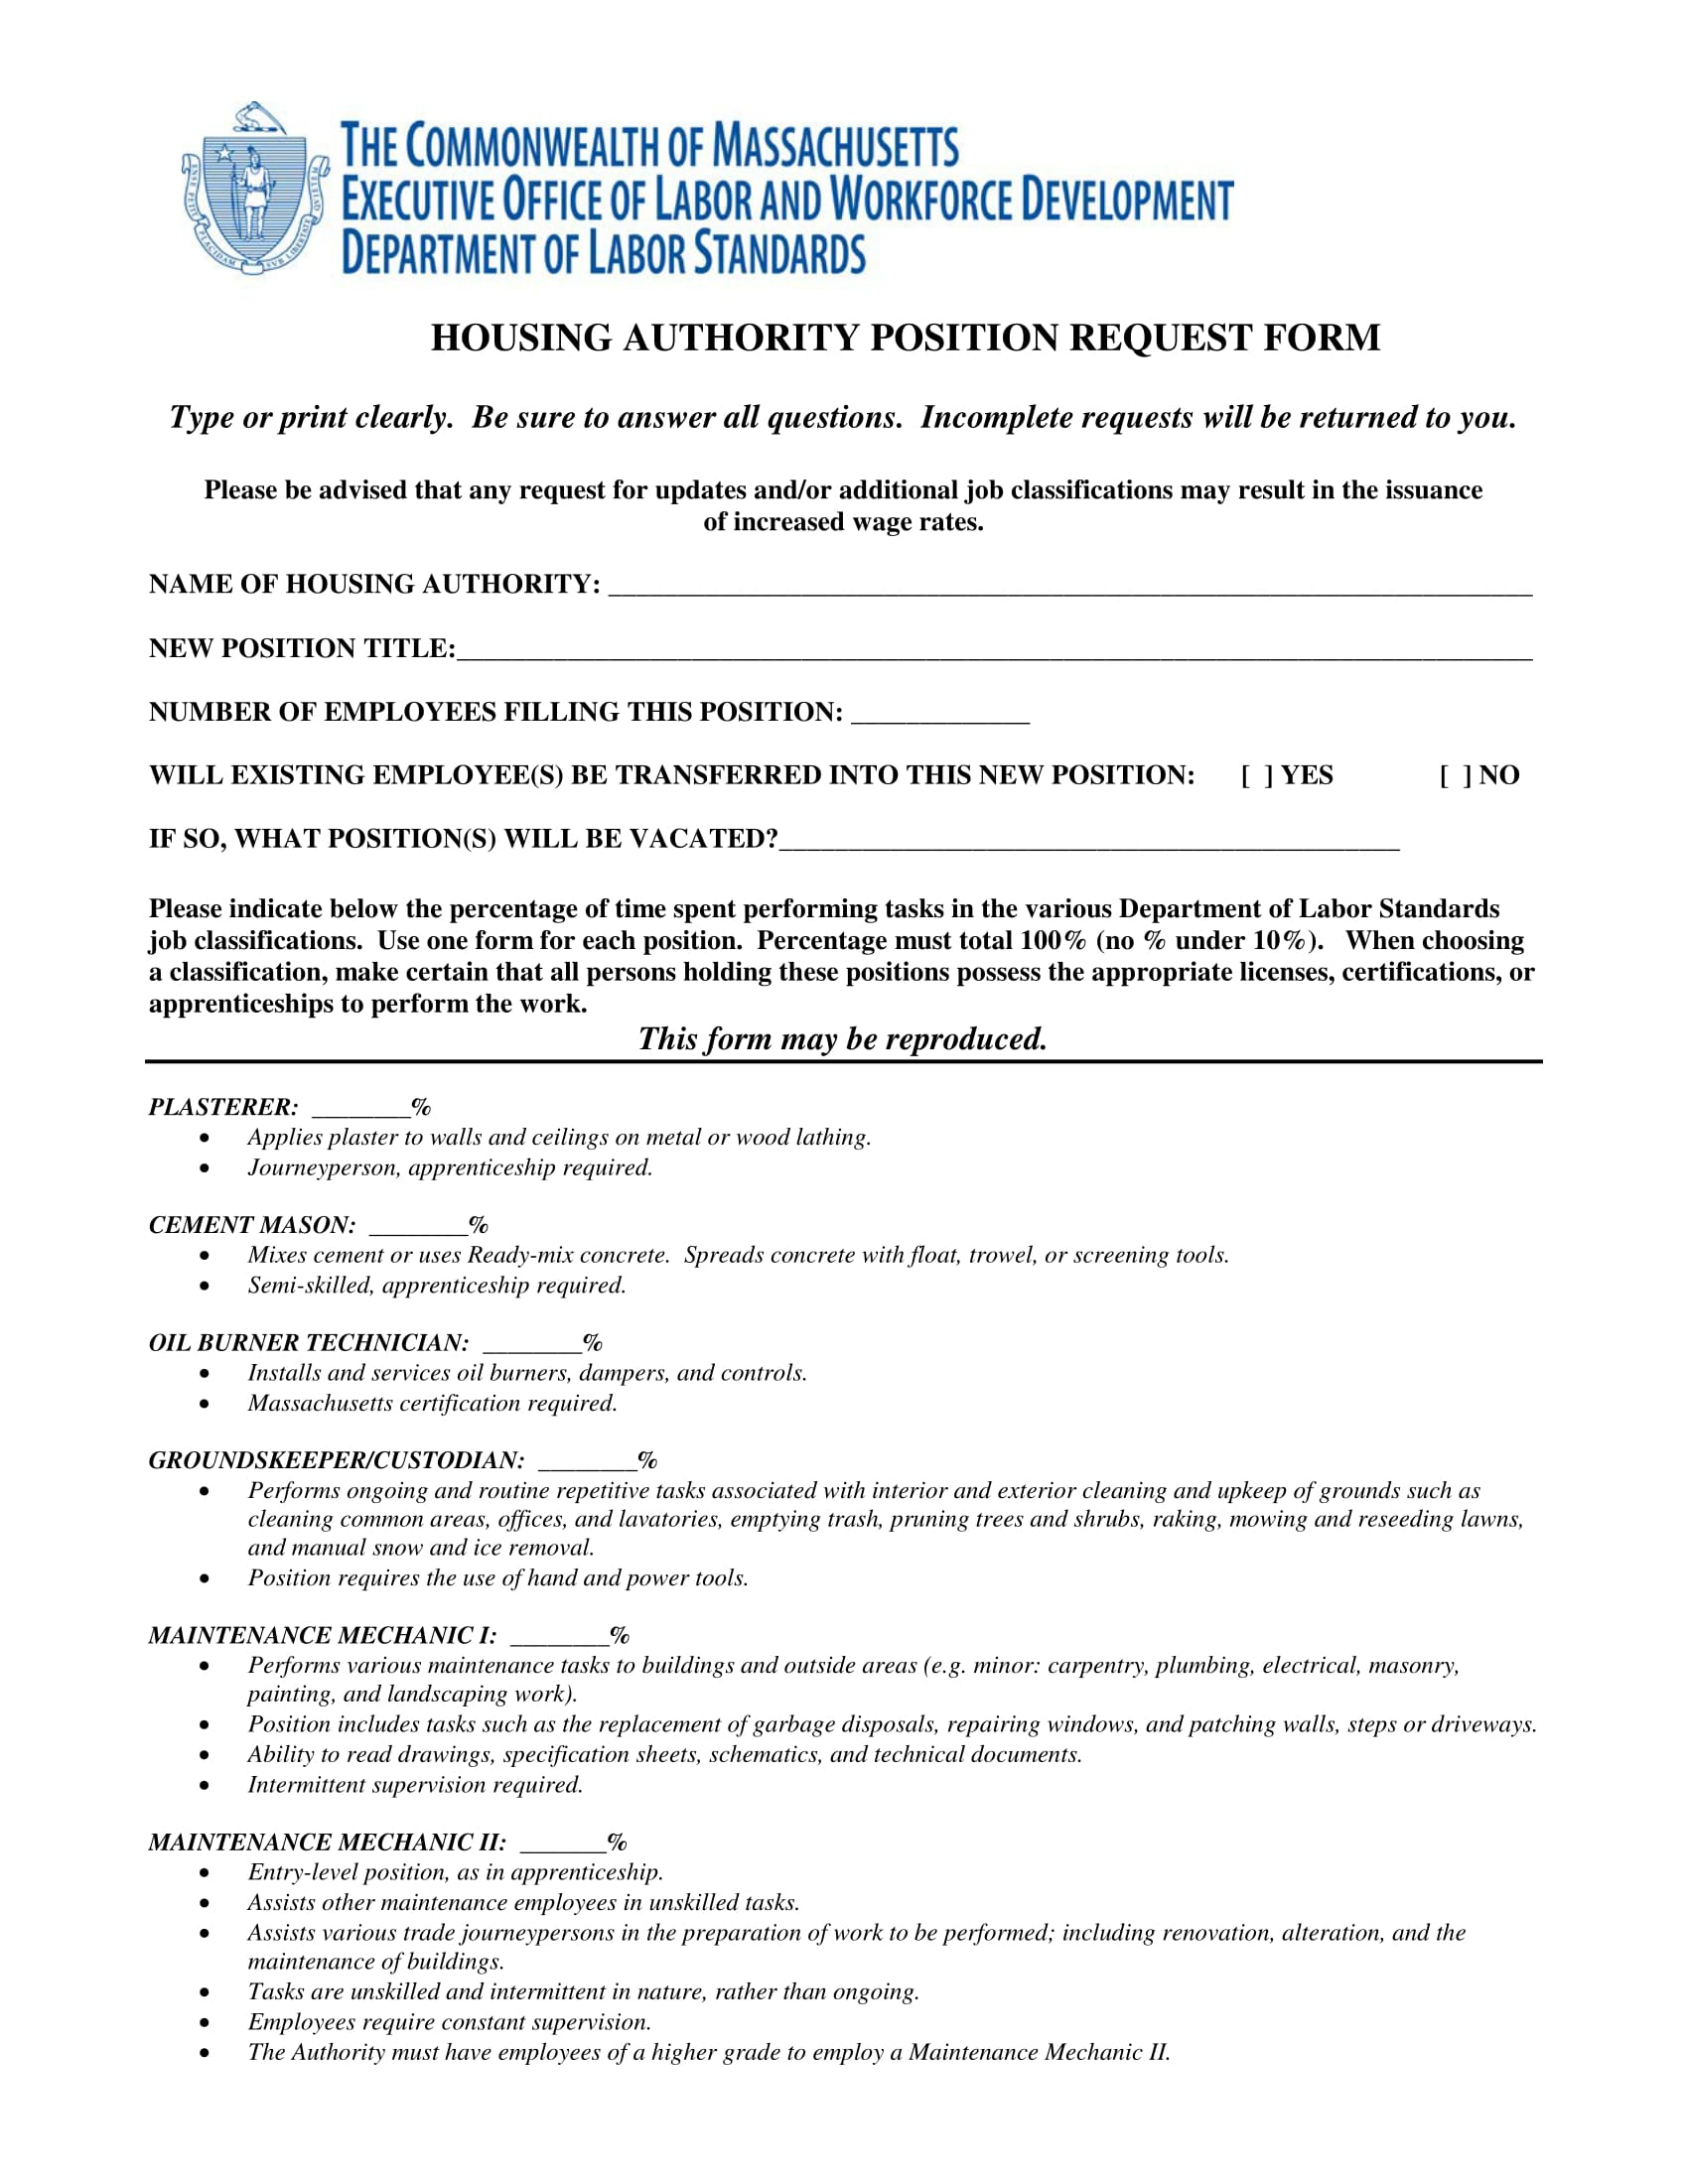 housing authority position request form 1